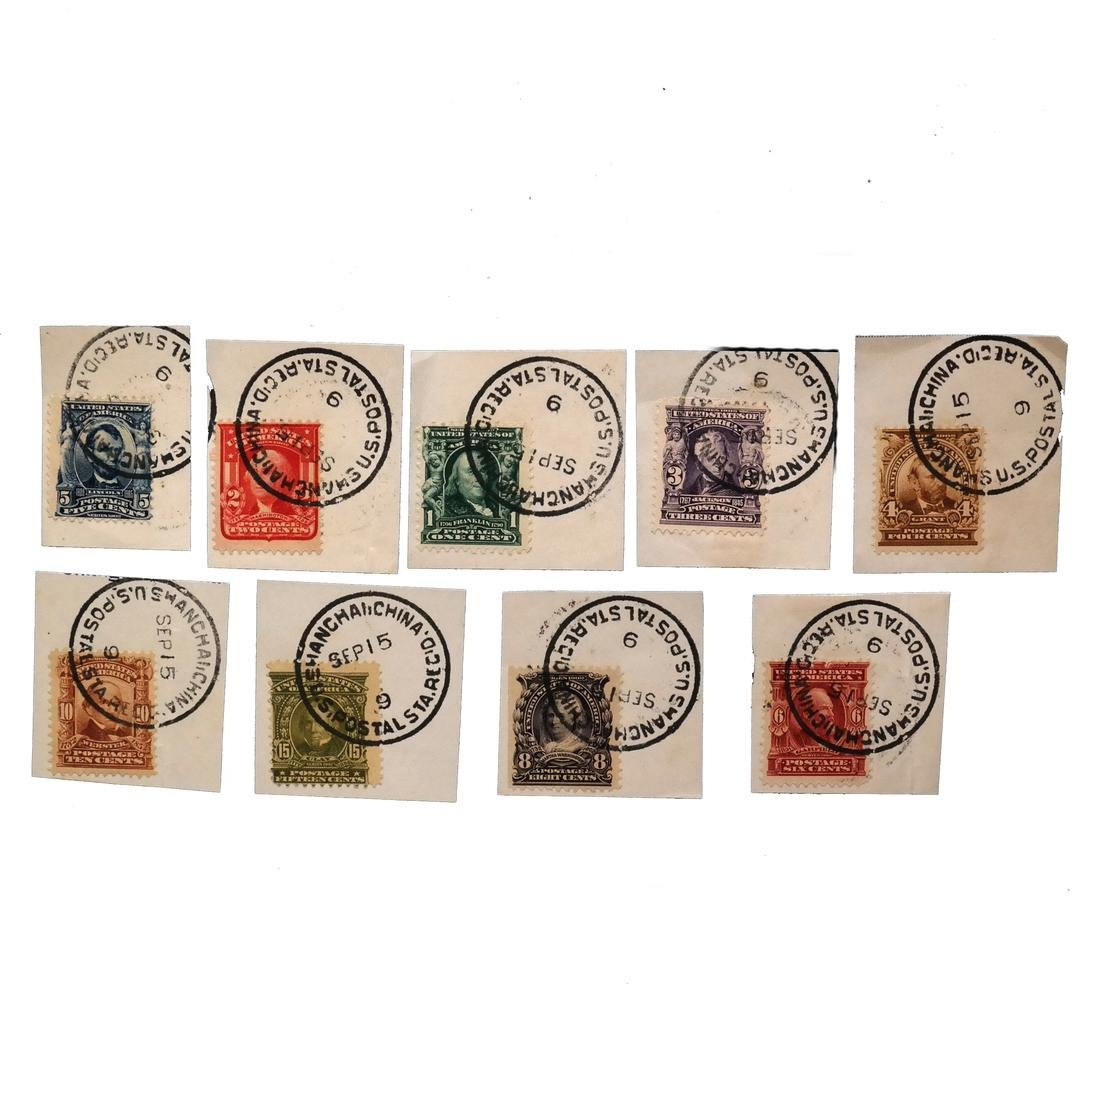 UNITED STATES 1902-1903 1¢-15¢ USED IN